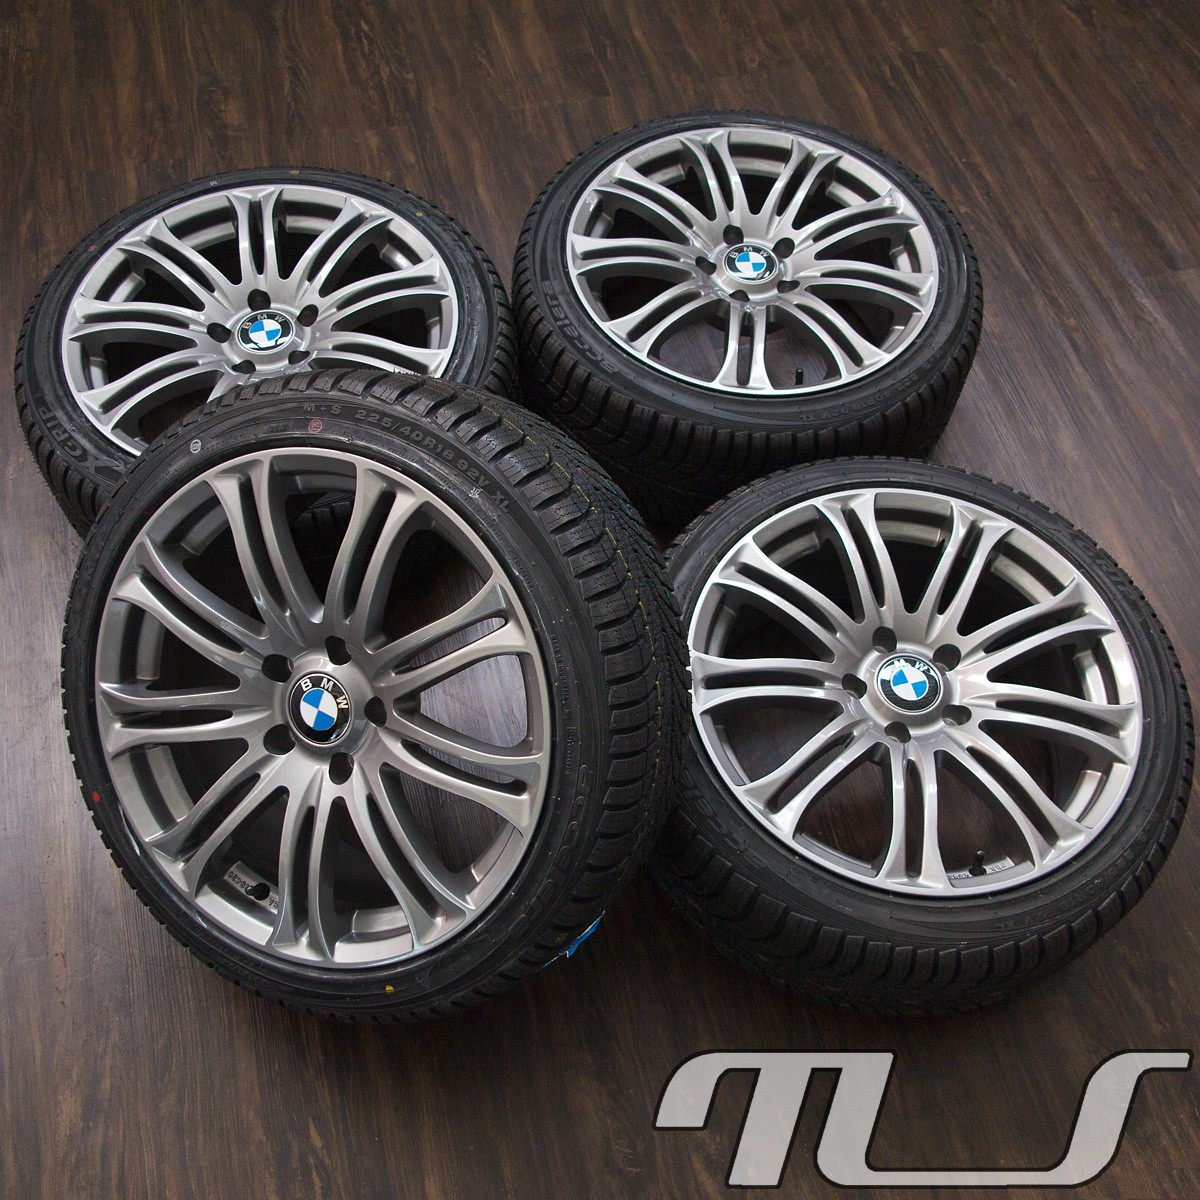 18 winter wheels bmw e90 e91 e92 e93 f30 f31 3 series 5 f10 x1 x3 tyres ebay. Black Bedroom Furniture Sets. Home Design Ideas